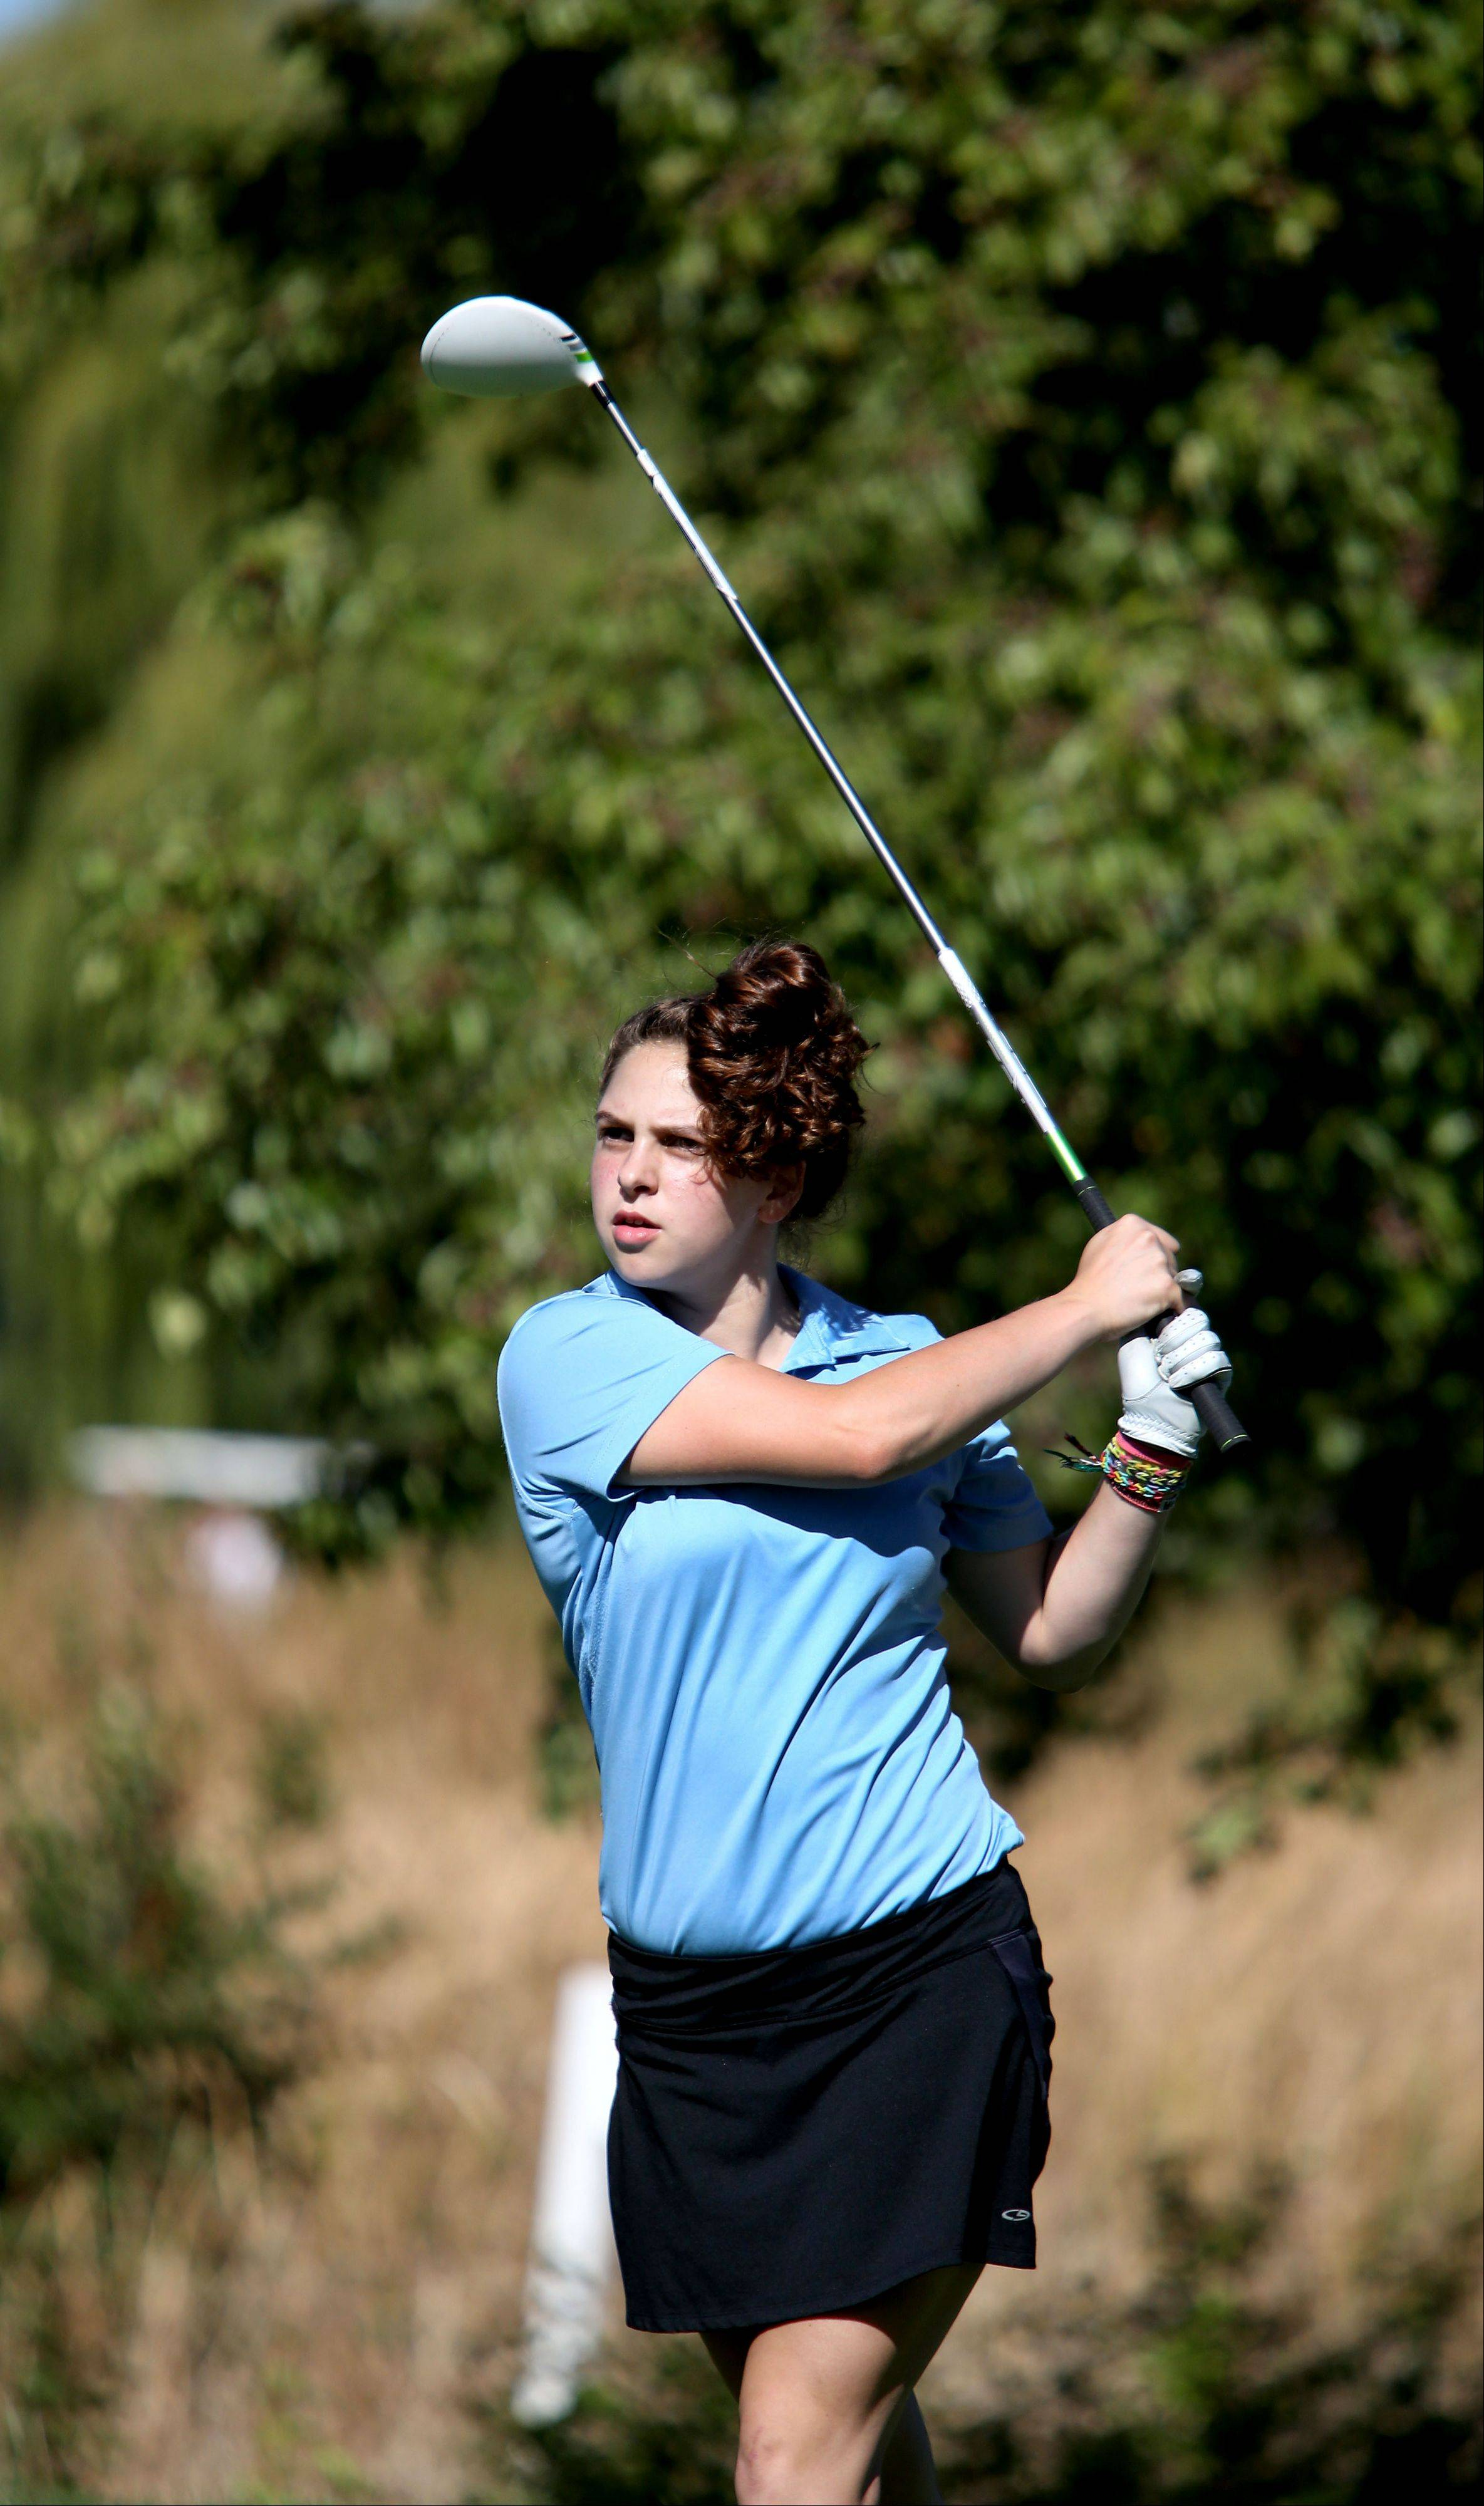 Anna Dinella of Willowbrook watches her shot on the first tee during Class AA Glenbard East regional girls golf at Glendale Lakes Golf Course in Glendale Heights on Wednesday.